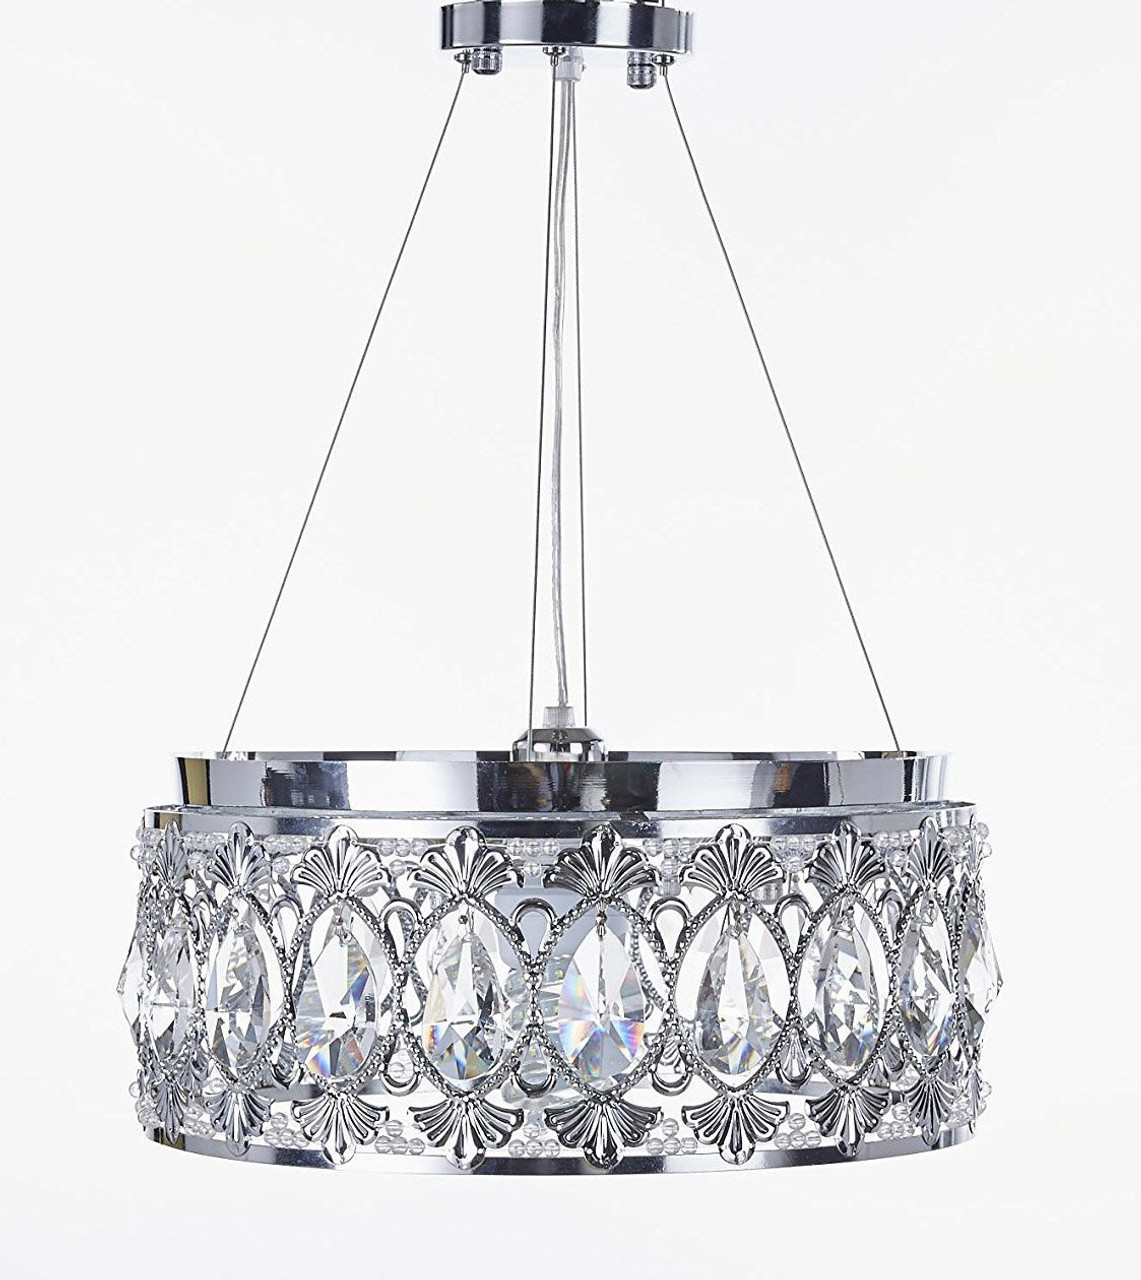 h chandelier round bpe brass rachelle xiertekusa antique index bronze xtk pendant light crystal